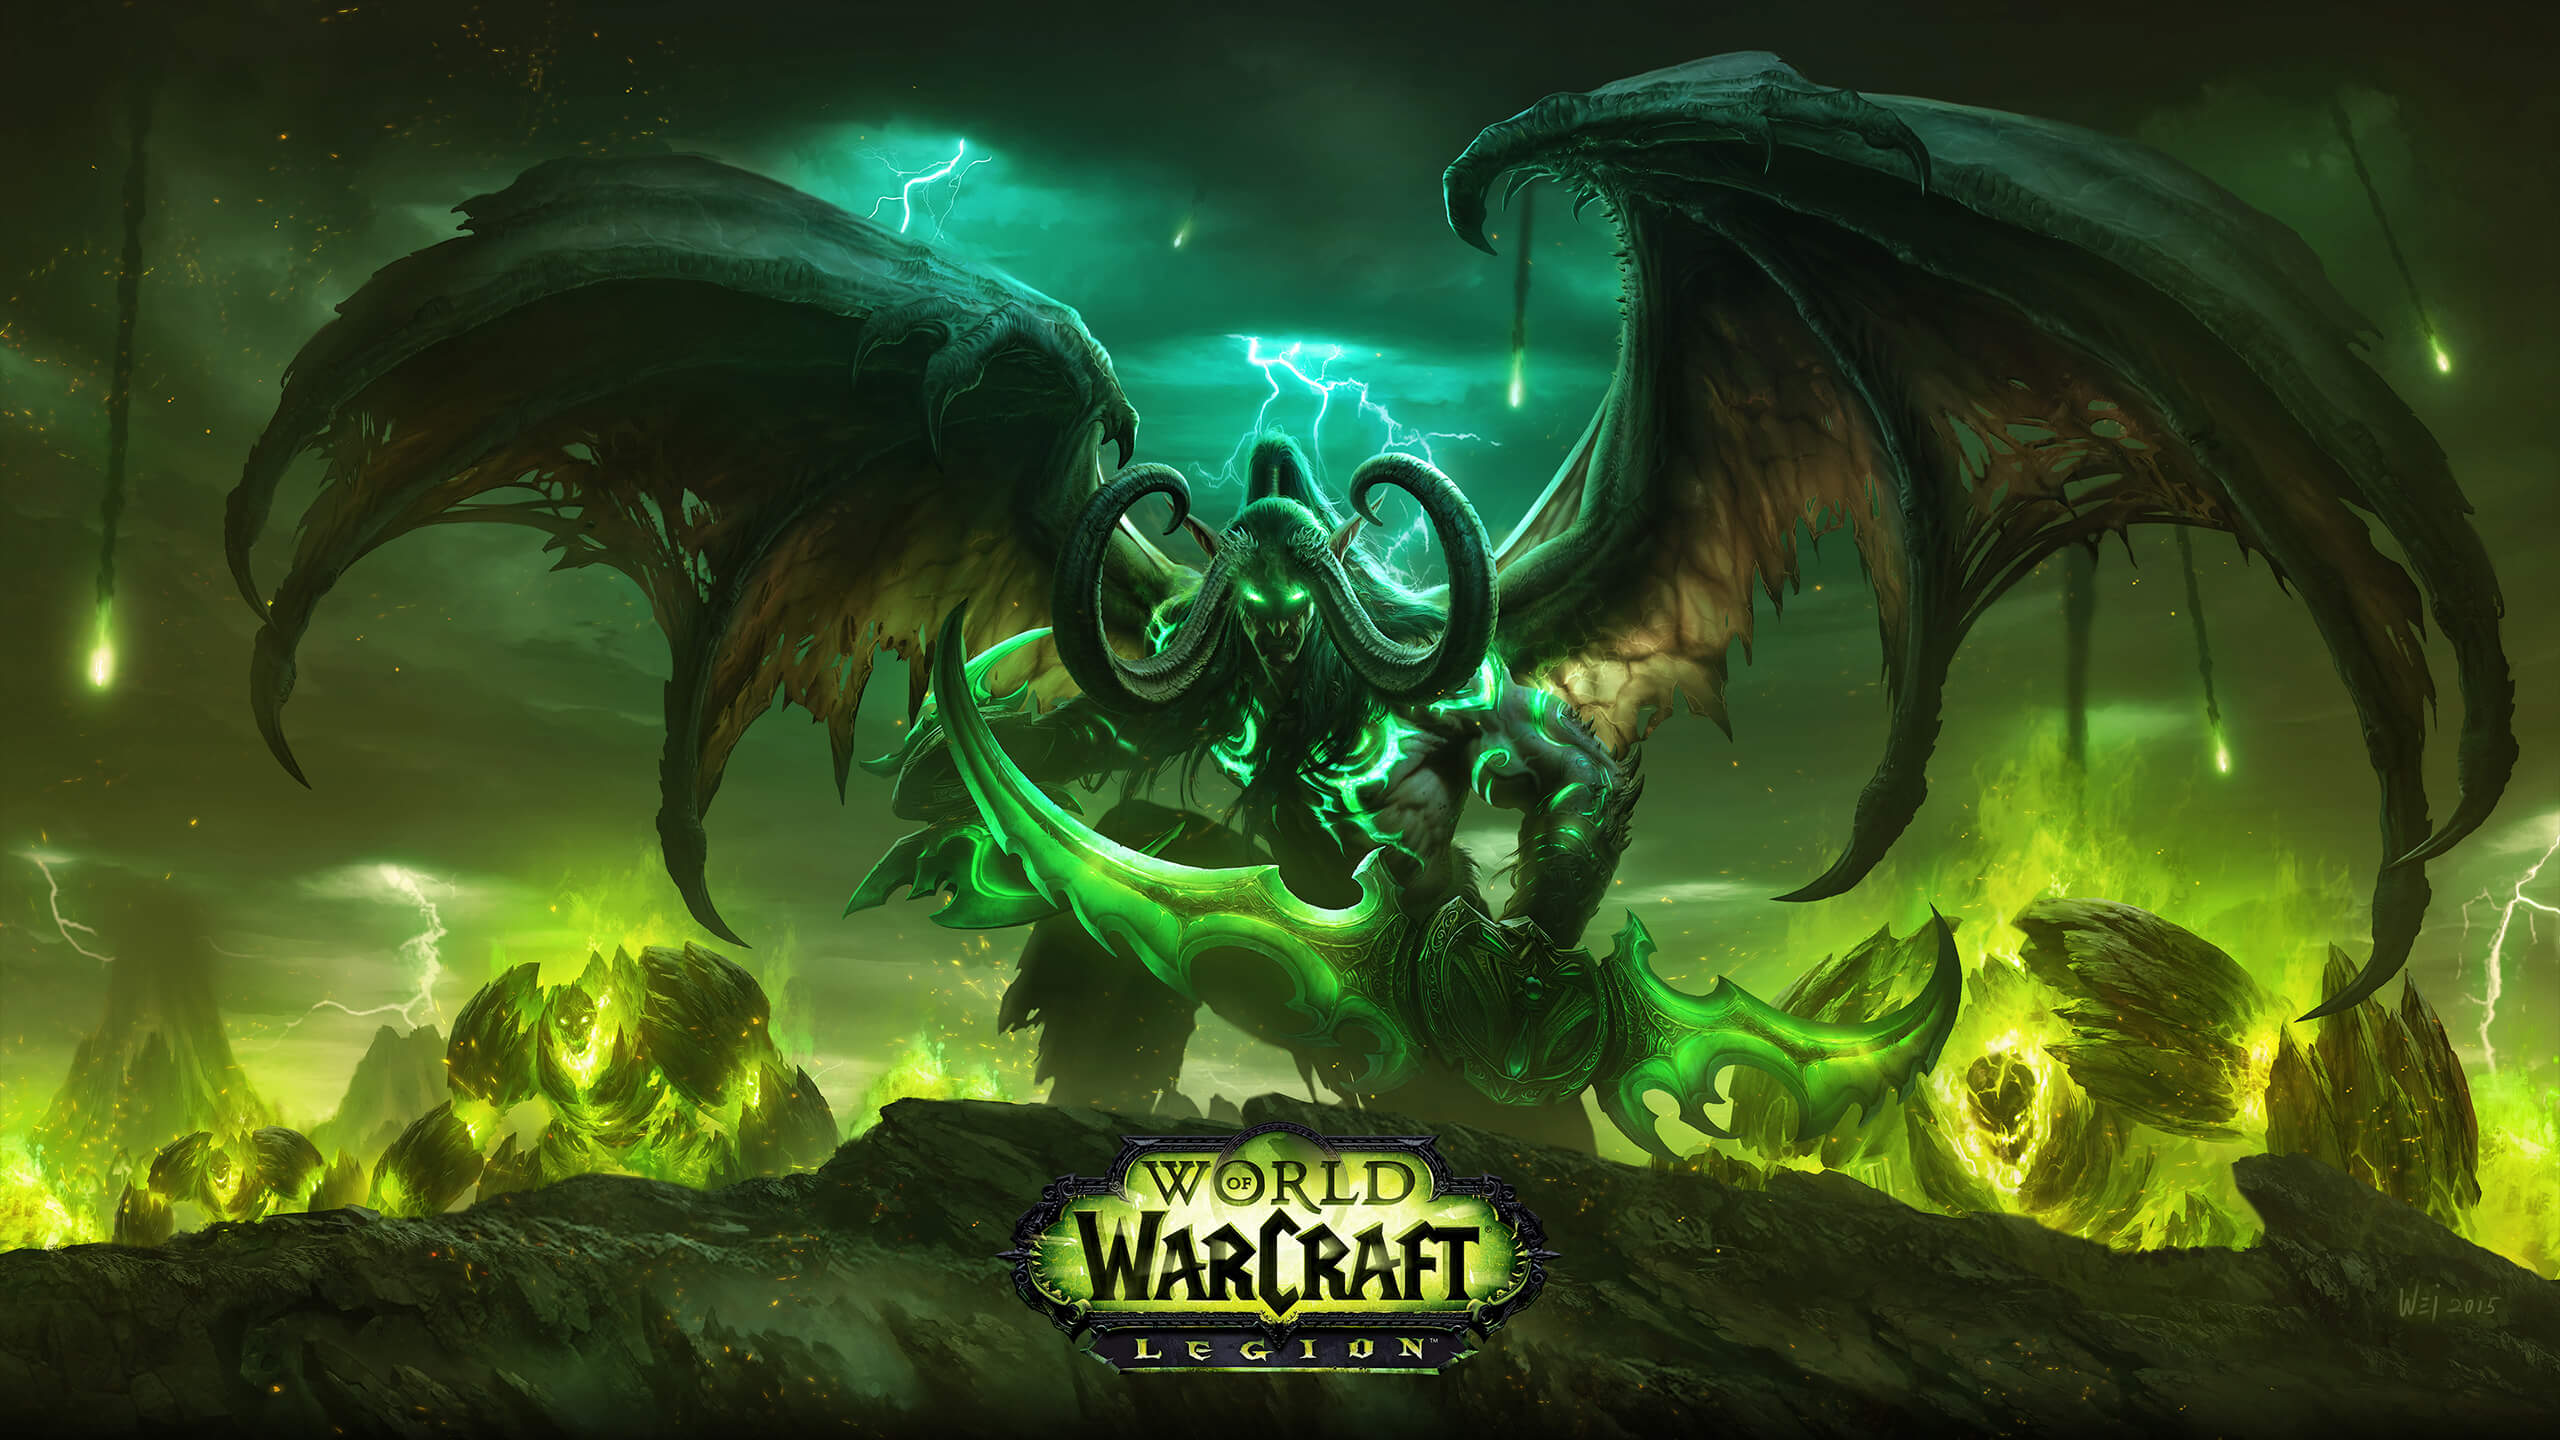 World of Warcraft Legion Sells 3.3 Million Copies by Day One